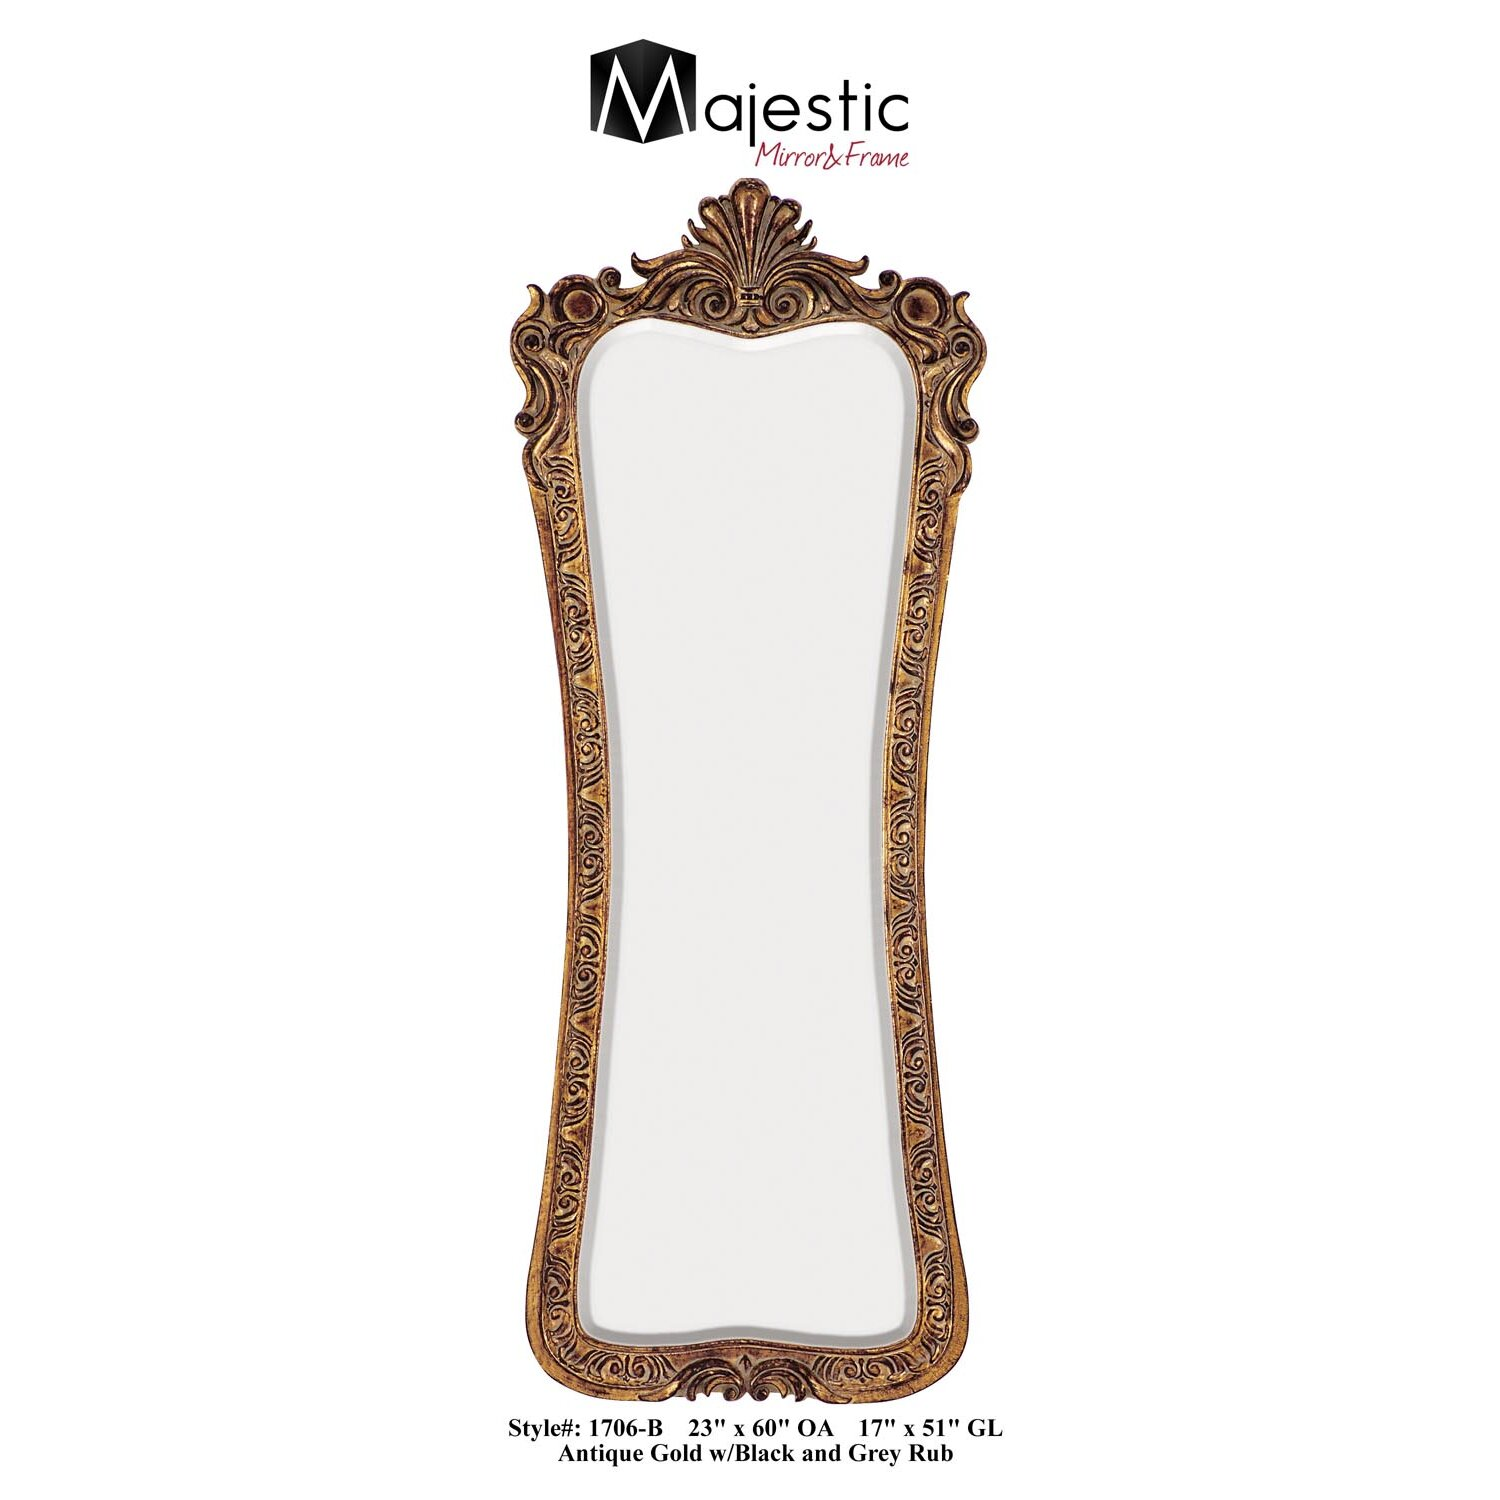 Astoria grand traditional bevel wall mirror reviews for Traditional mirror